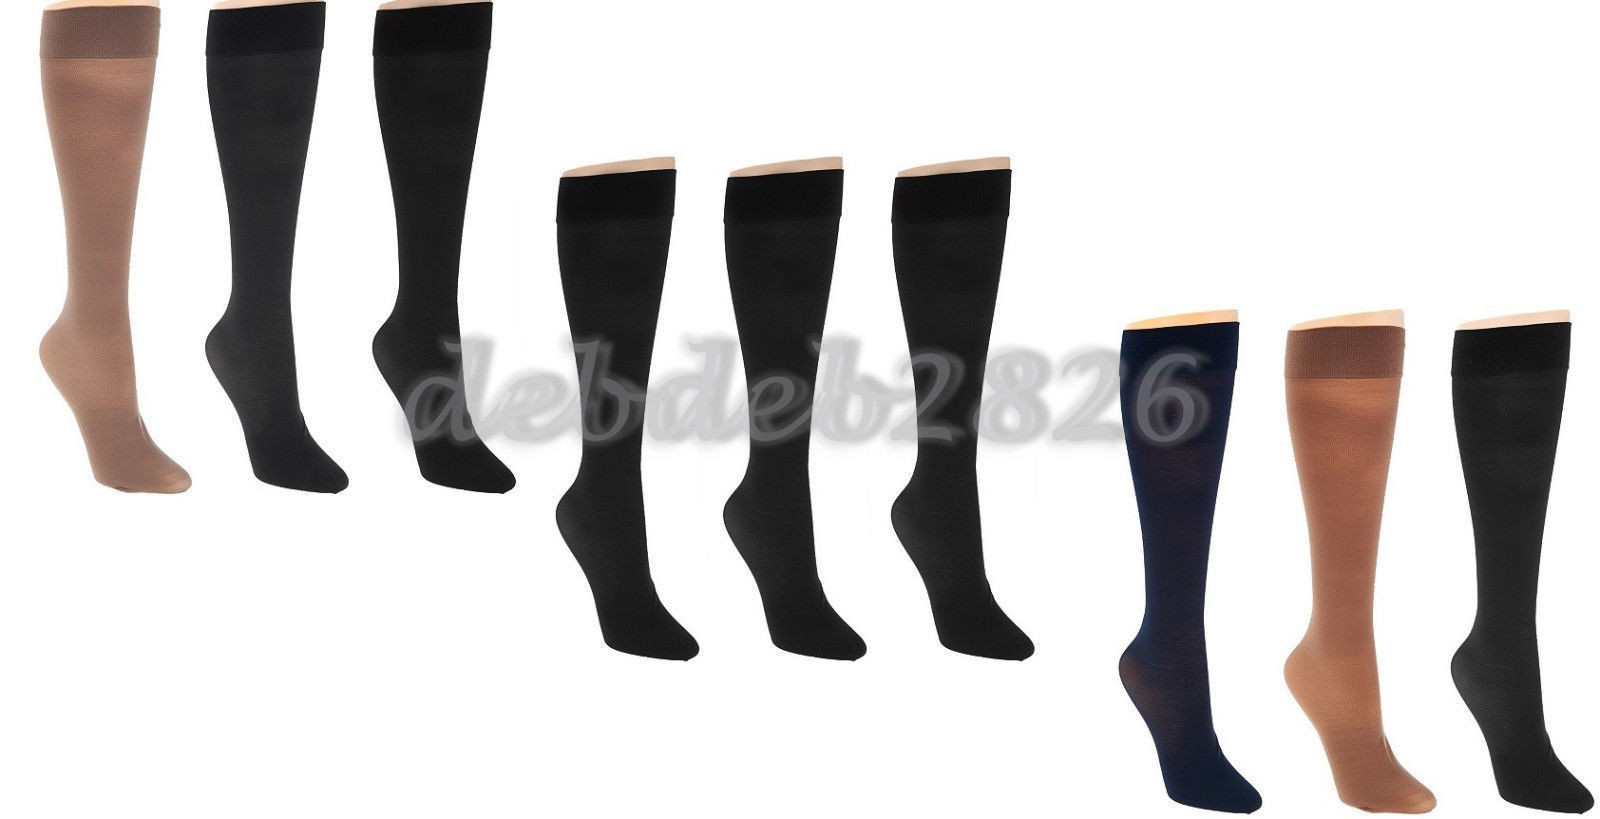 Primary image for Legacy Sheer Graduated Compression Socks Set of 3